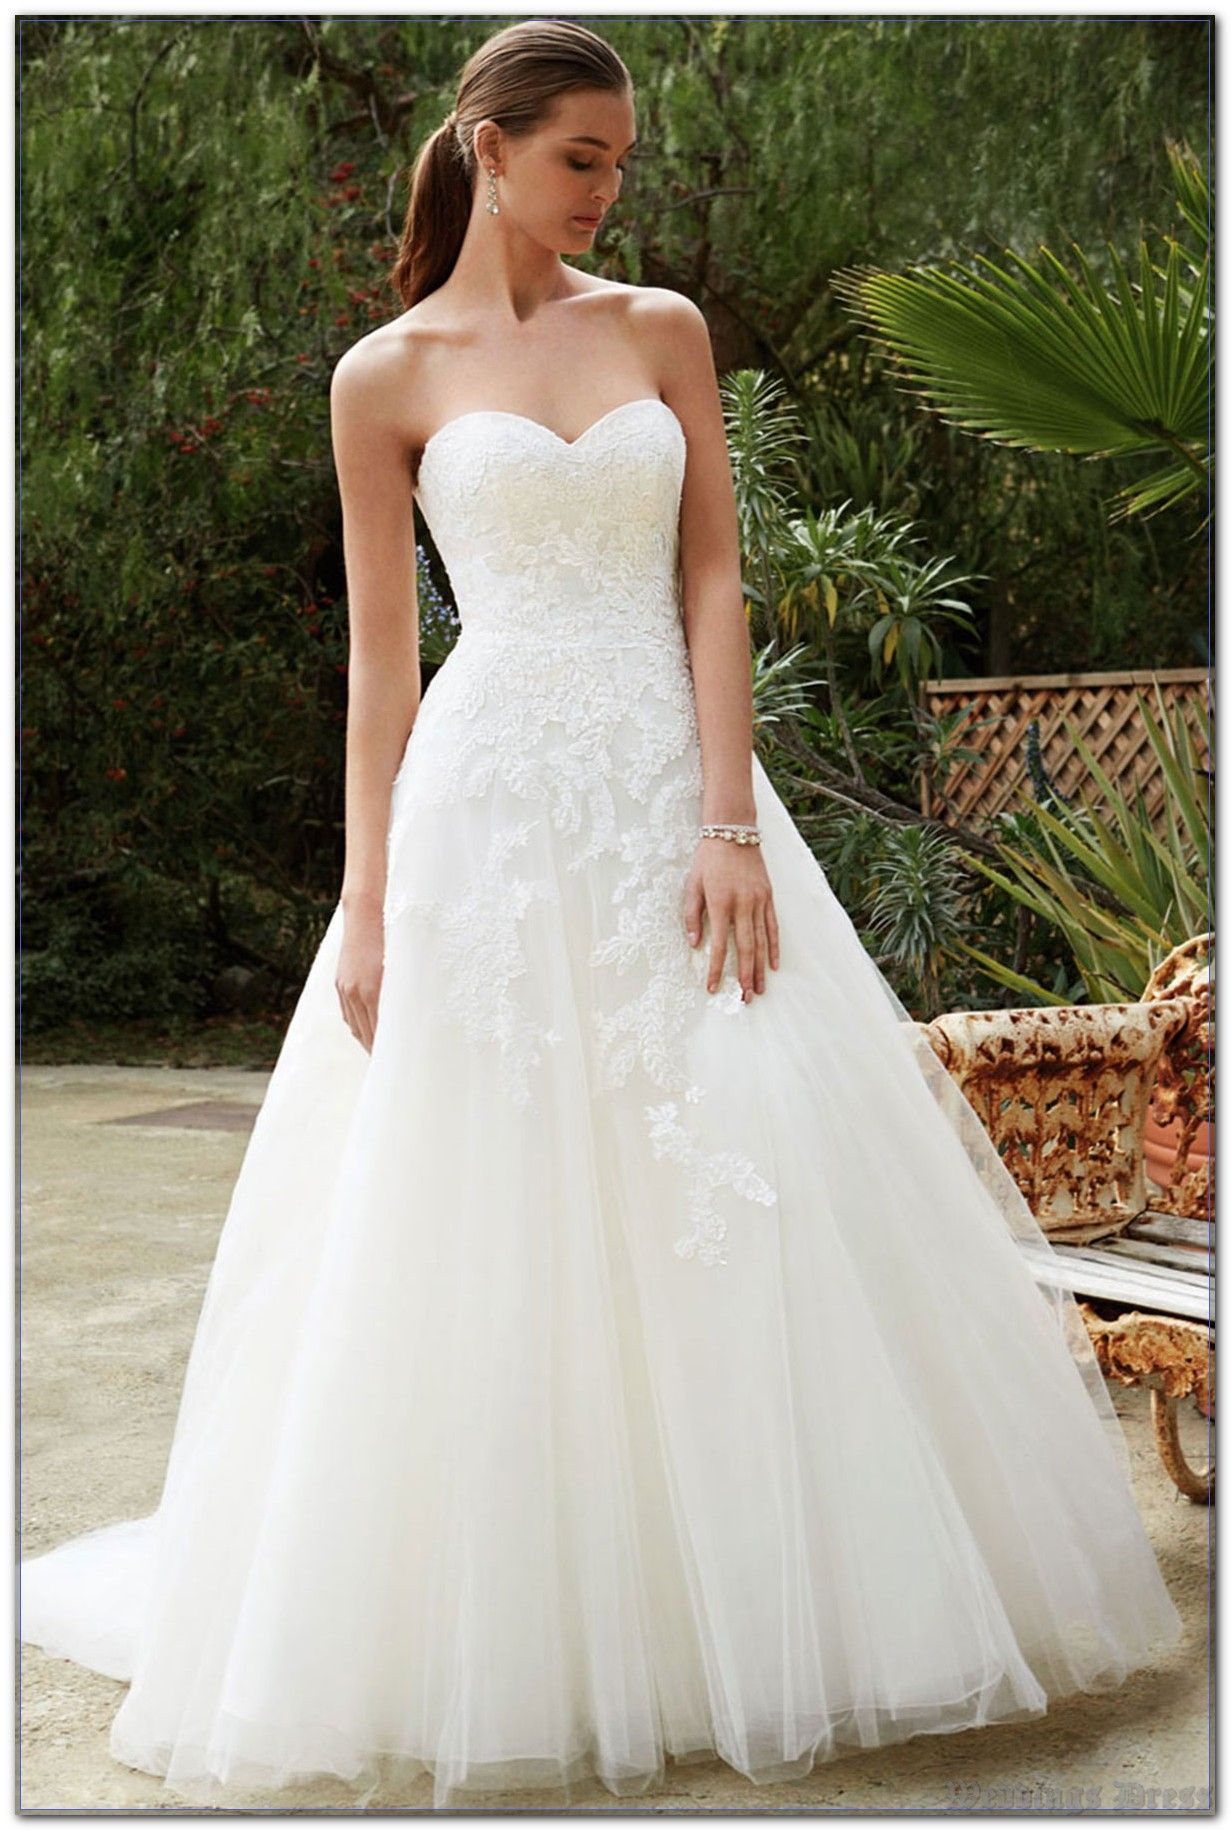 Weddings Dress – So Simple Even Your Kids Can Do It